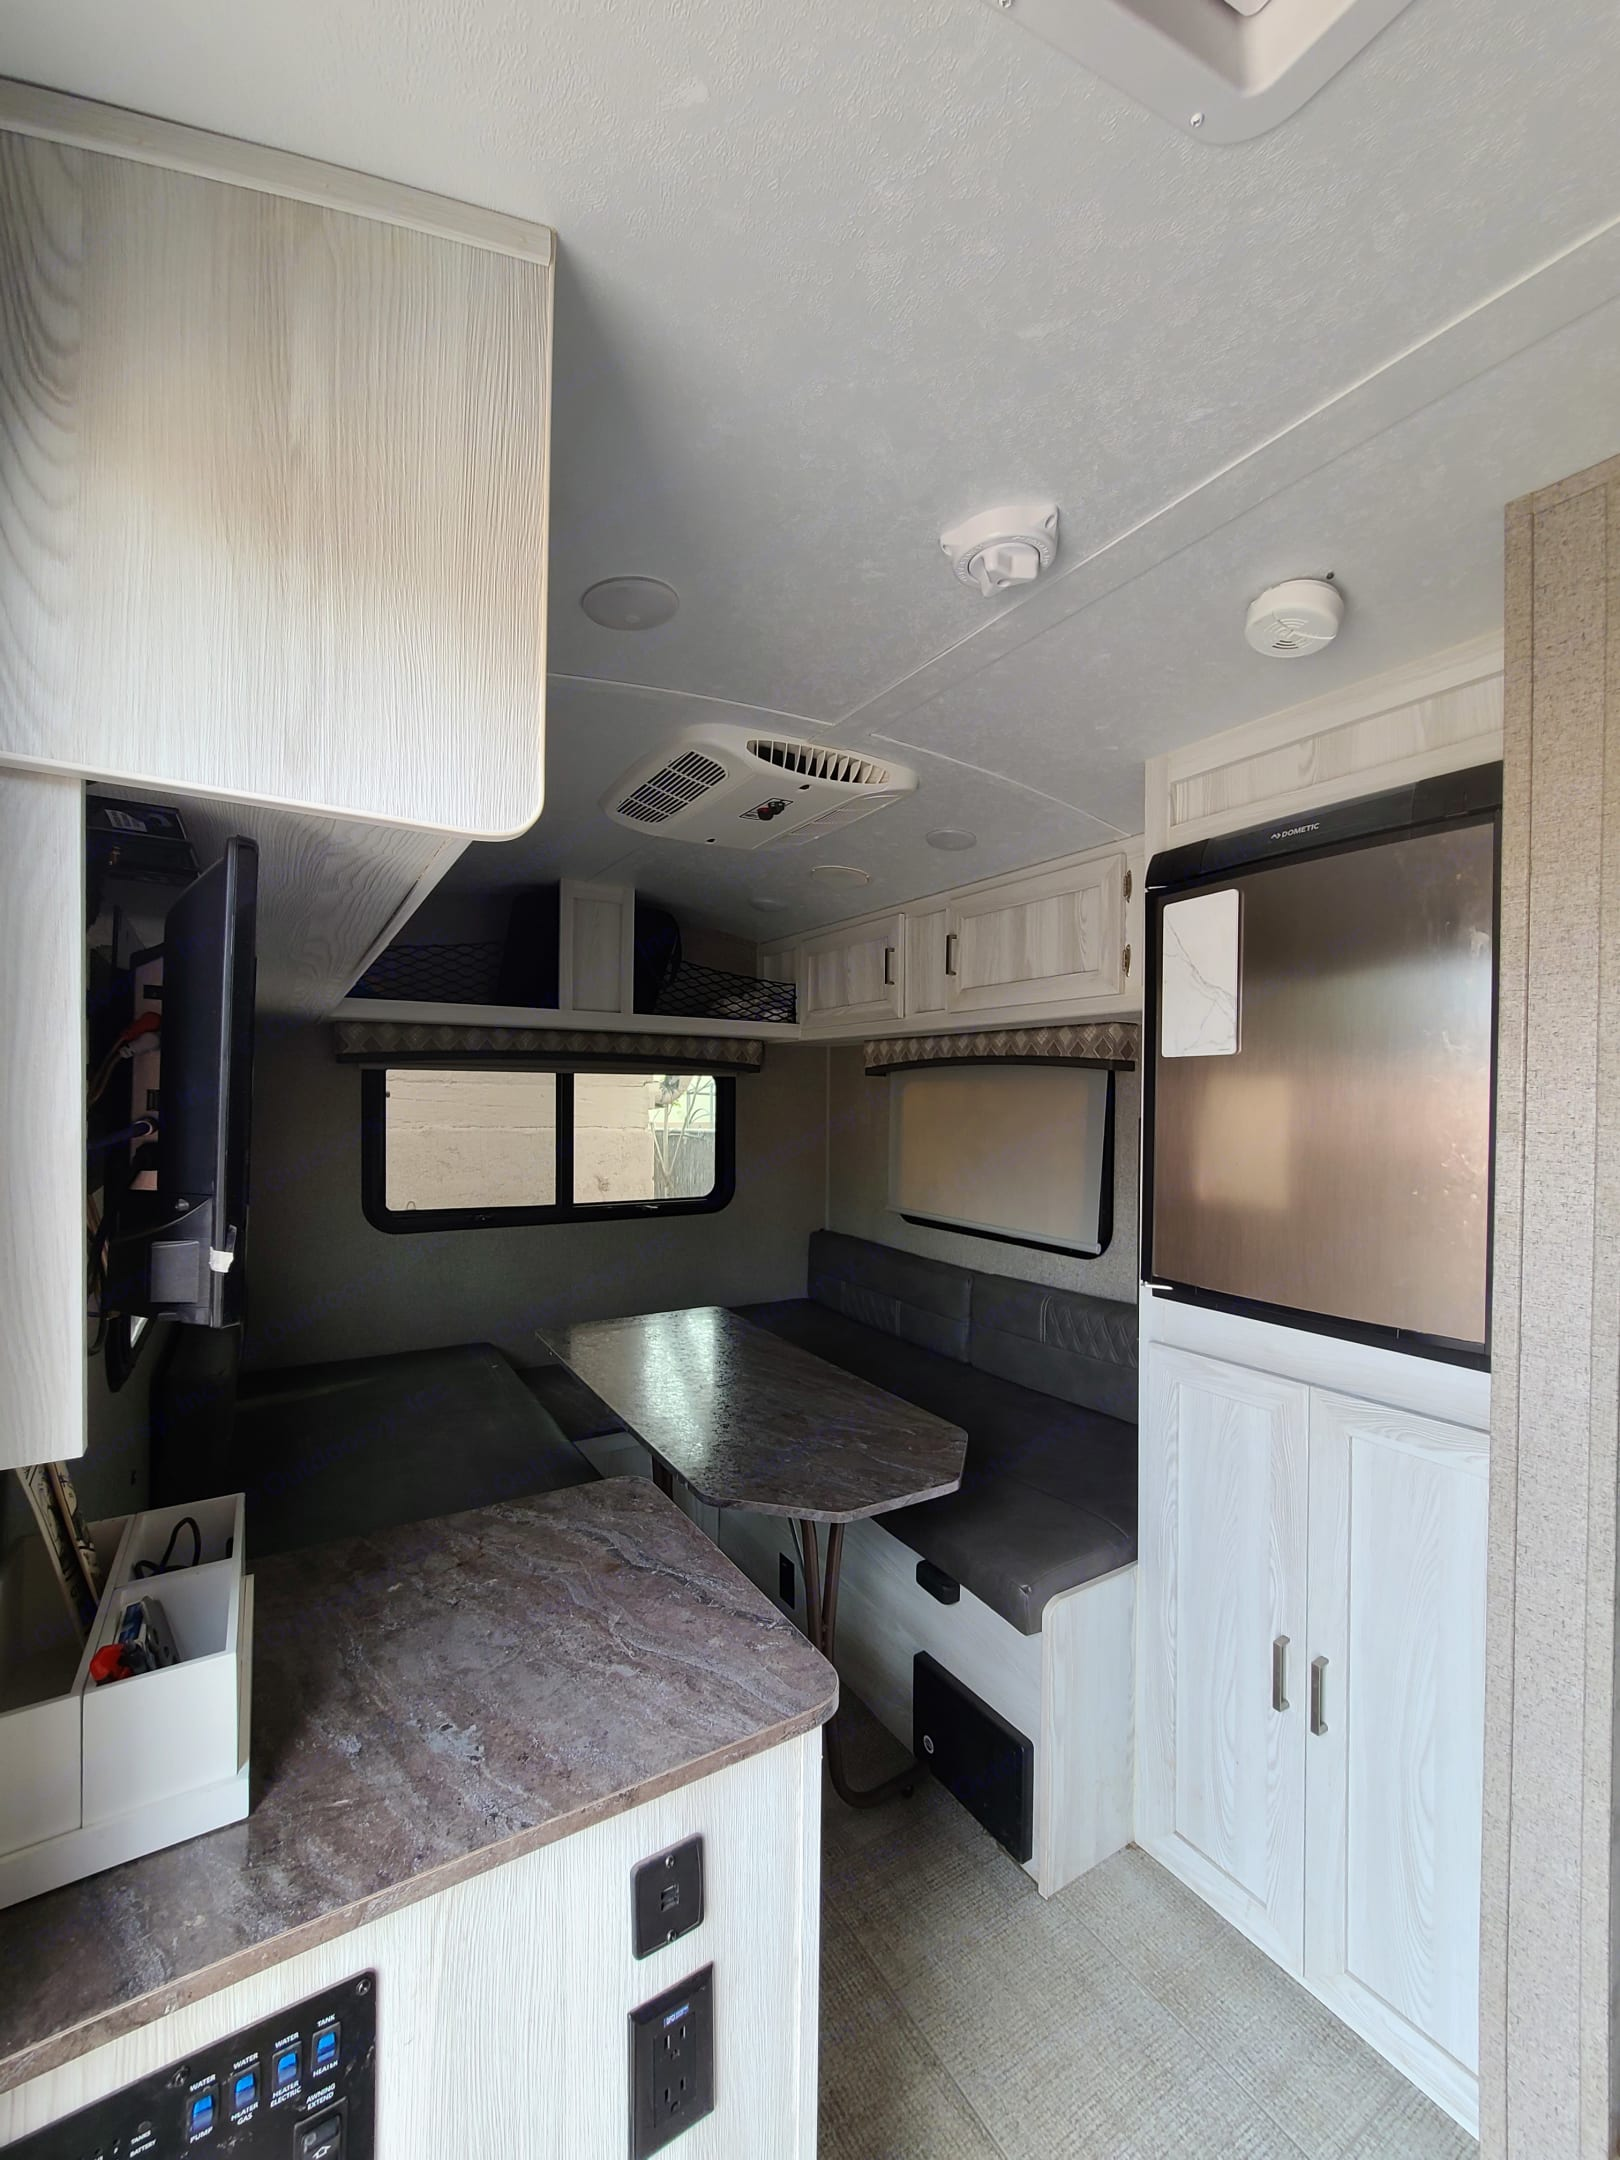 With the fridge, large dining area, and plenty of space, you can host up to 6 people in the trailer (if you're all vaccinated of course 😉). Flagstaff E-Pro 2020